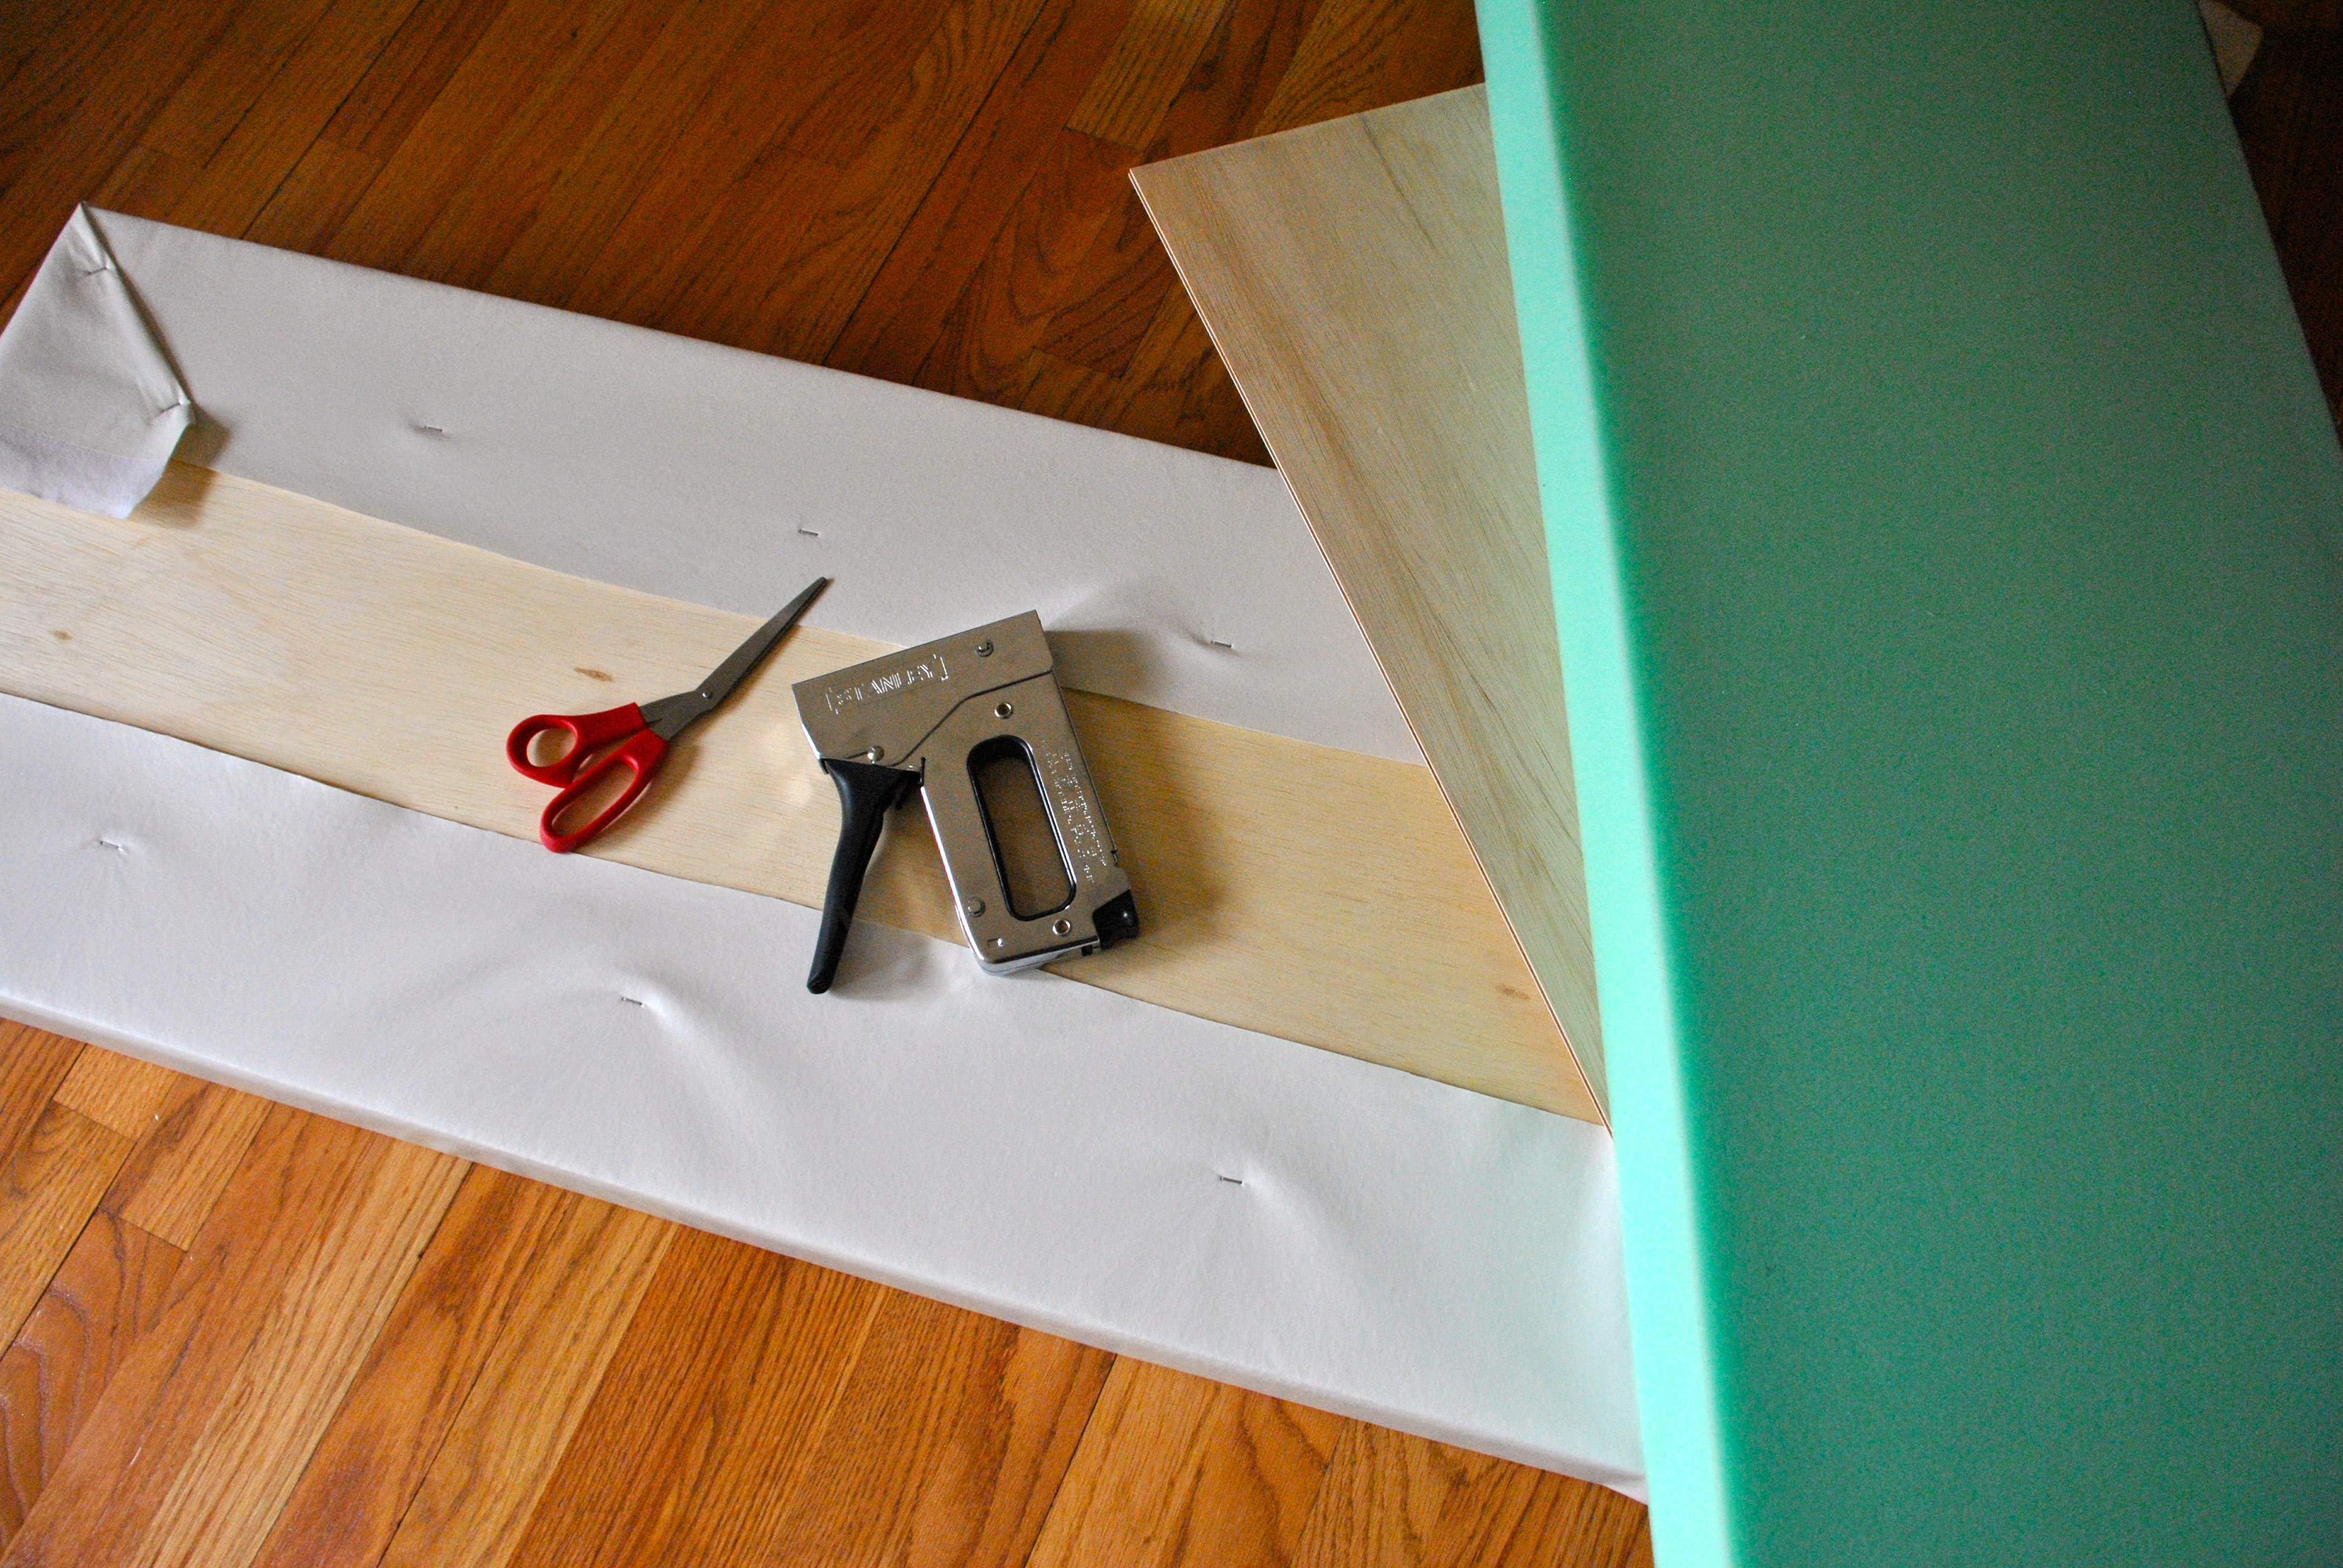 How To Make No Sew Cushions For Banquette Seating Or